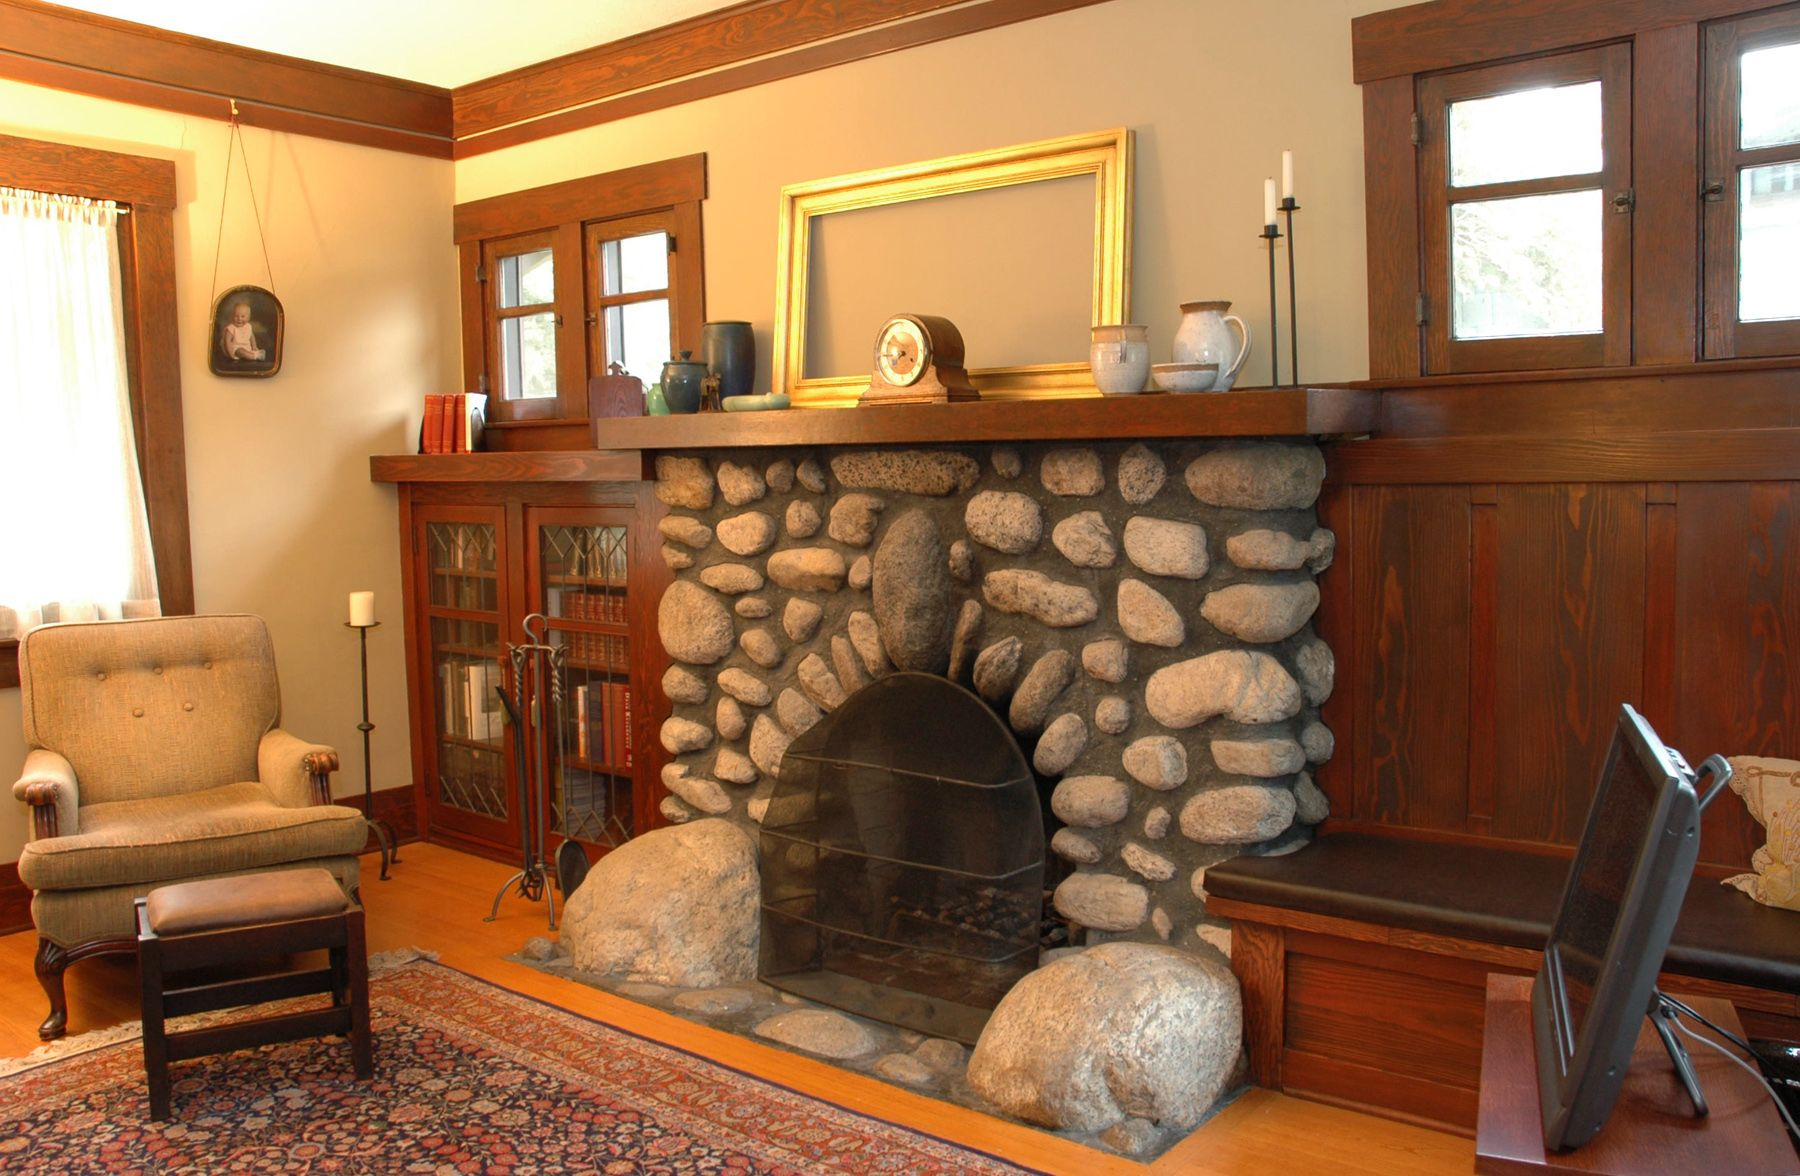 Bungalow Fireplace Mantel 1920s Craftsman Bungalow Pasadena Home Tours Greene